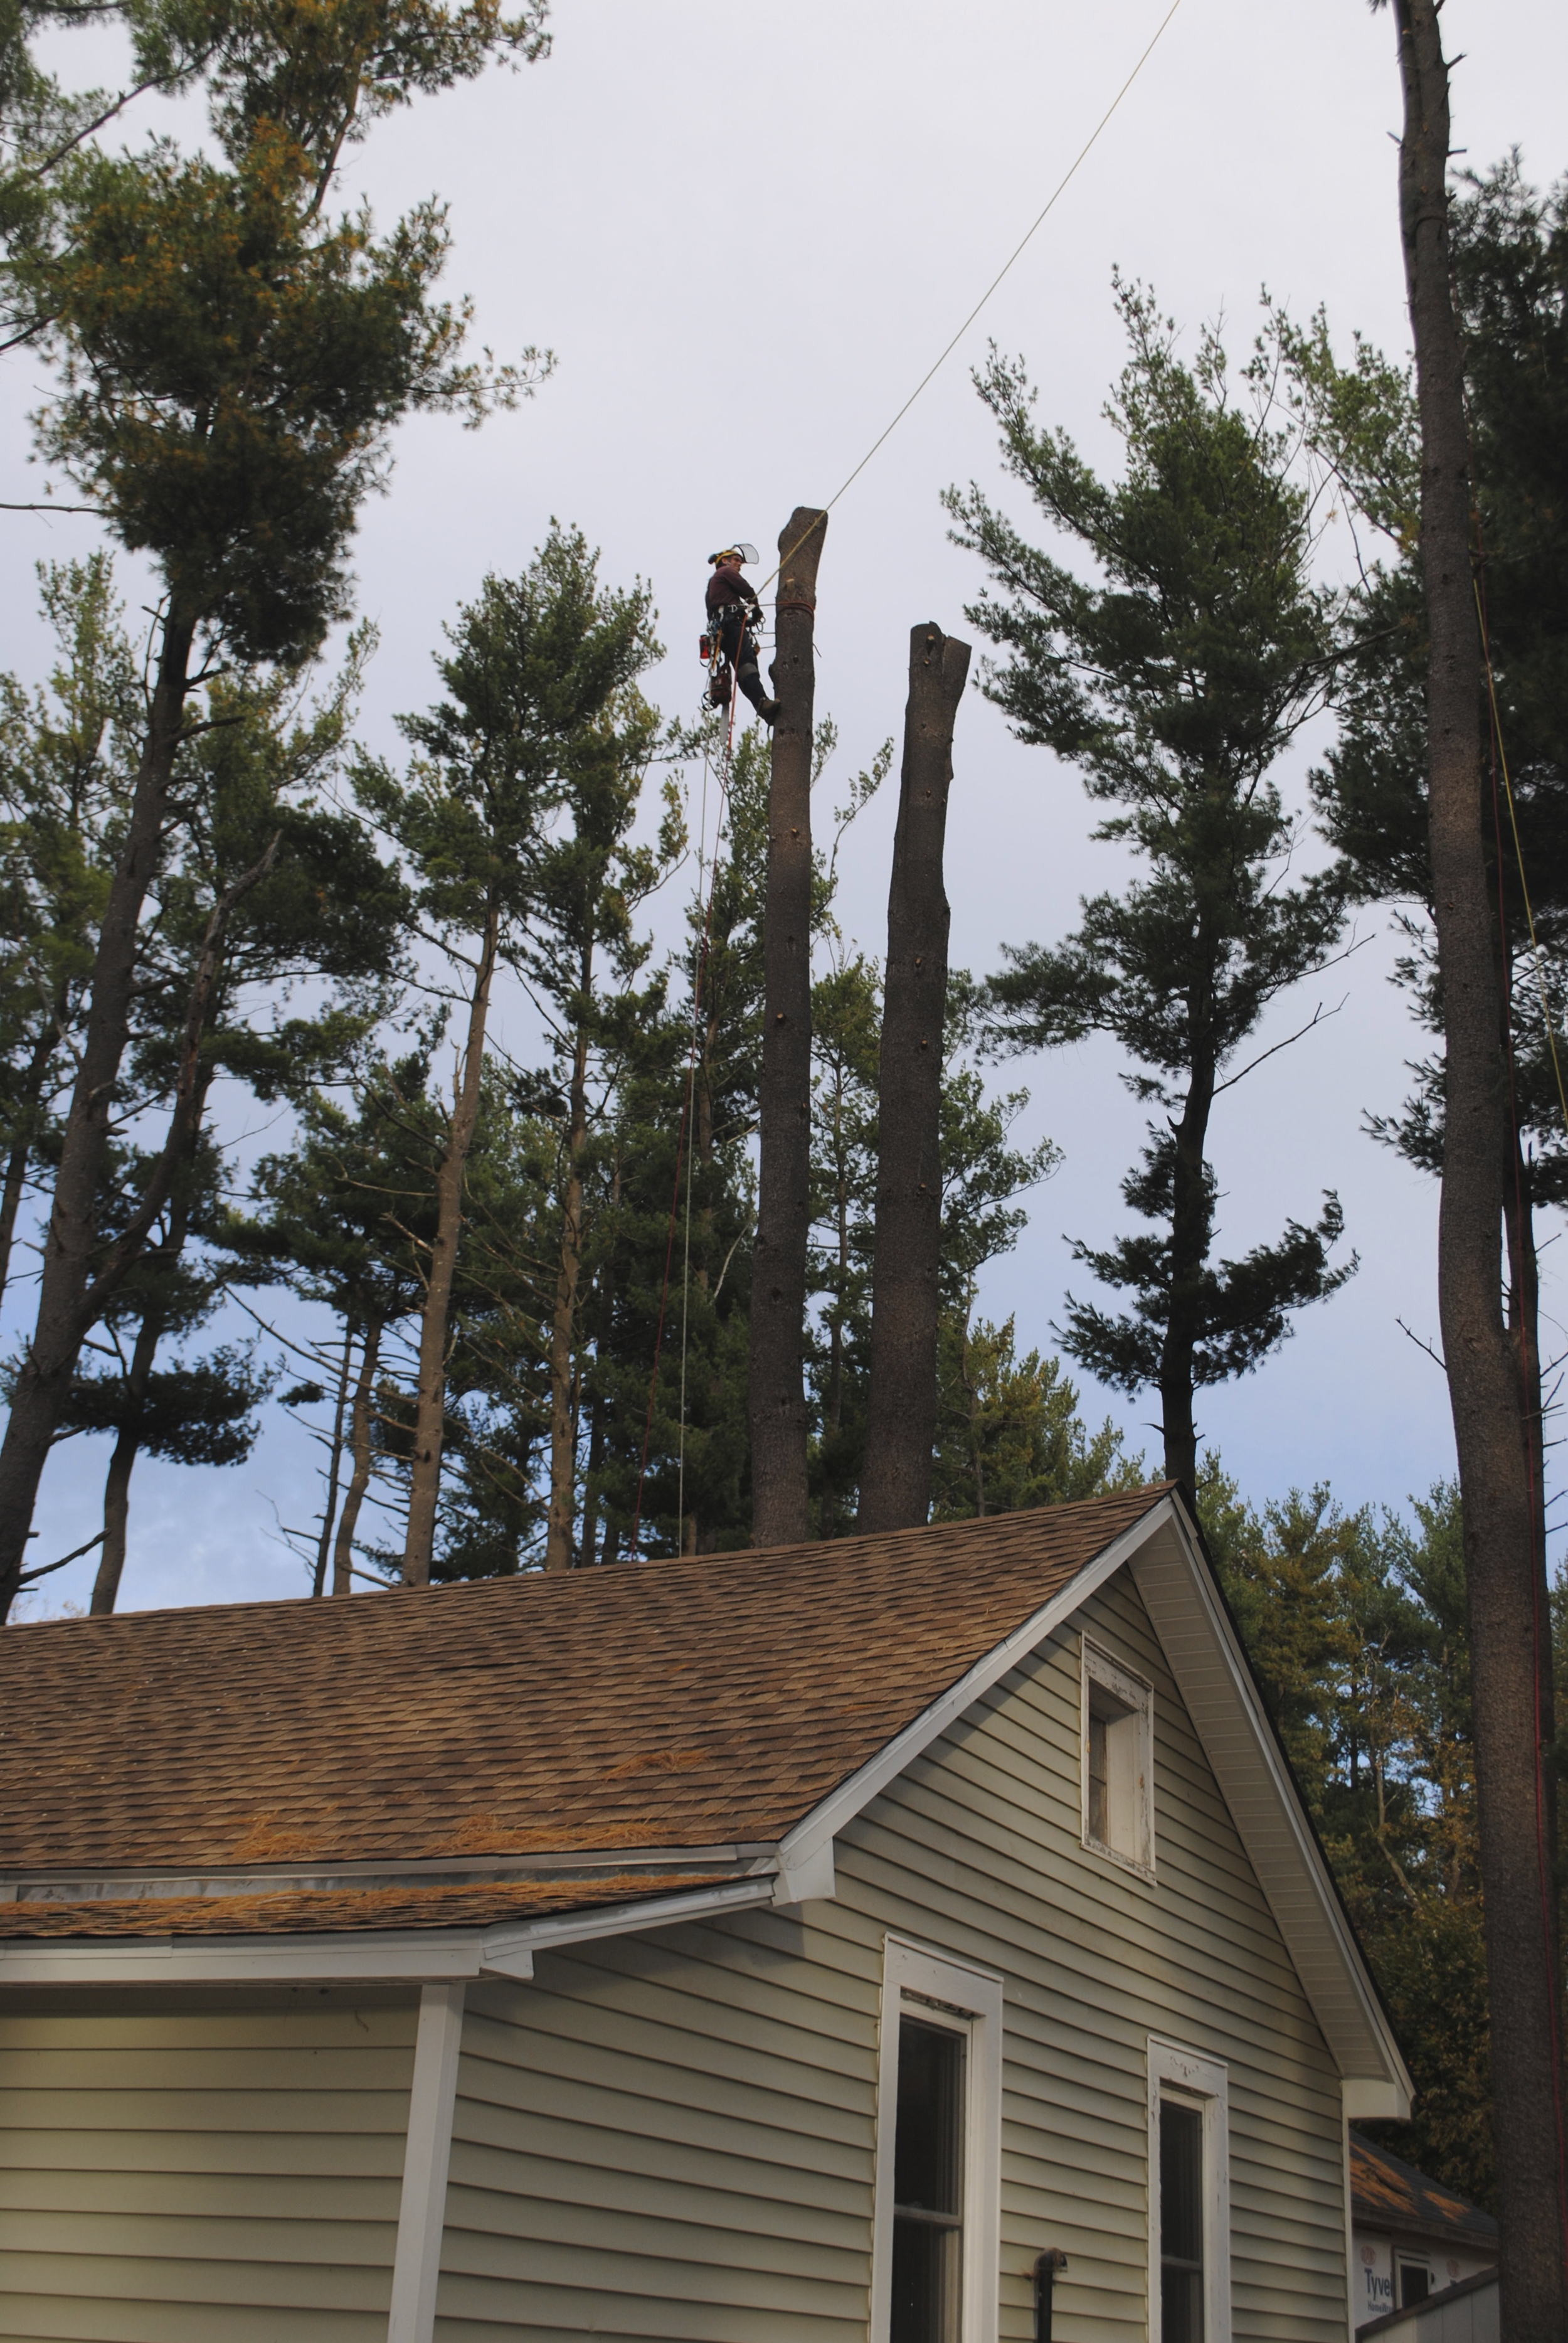 Using a complex rigging system, a double-trunk white pine tree is removed from next to a house.